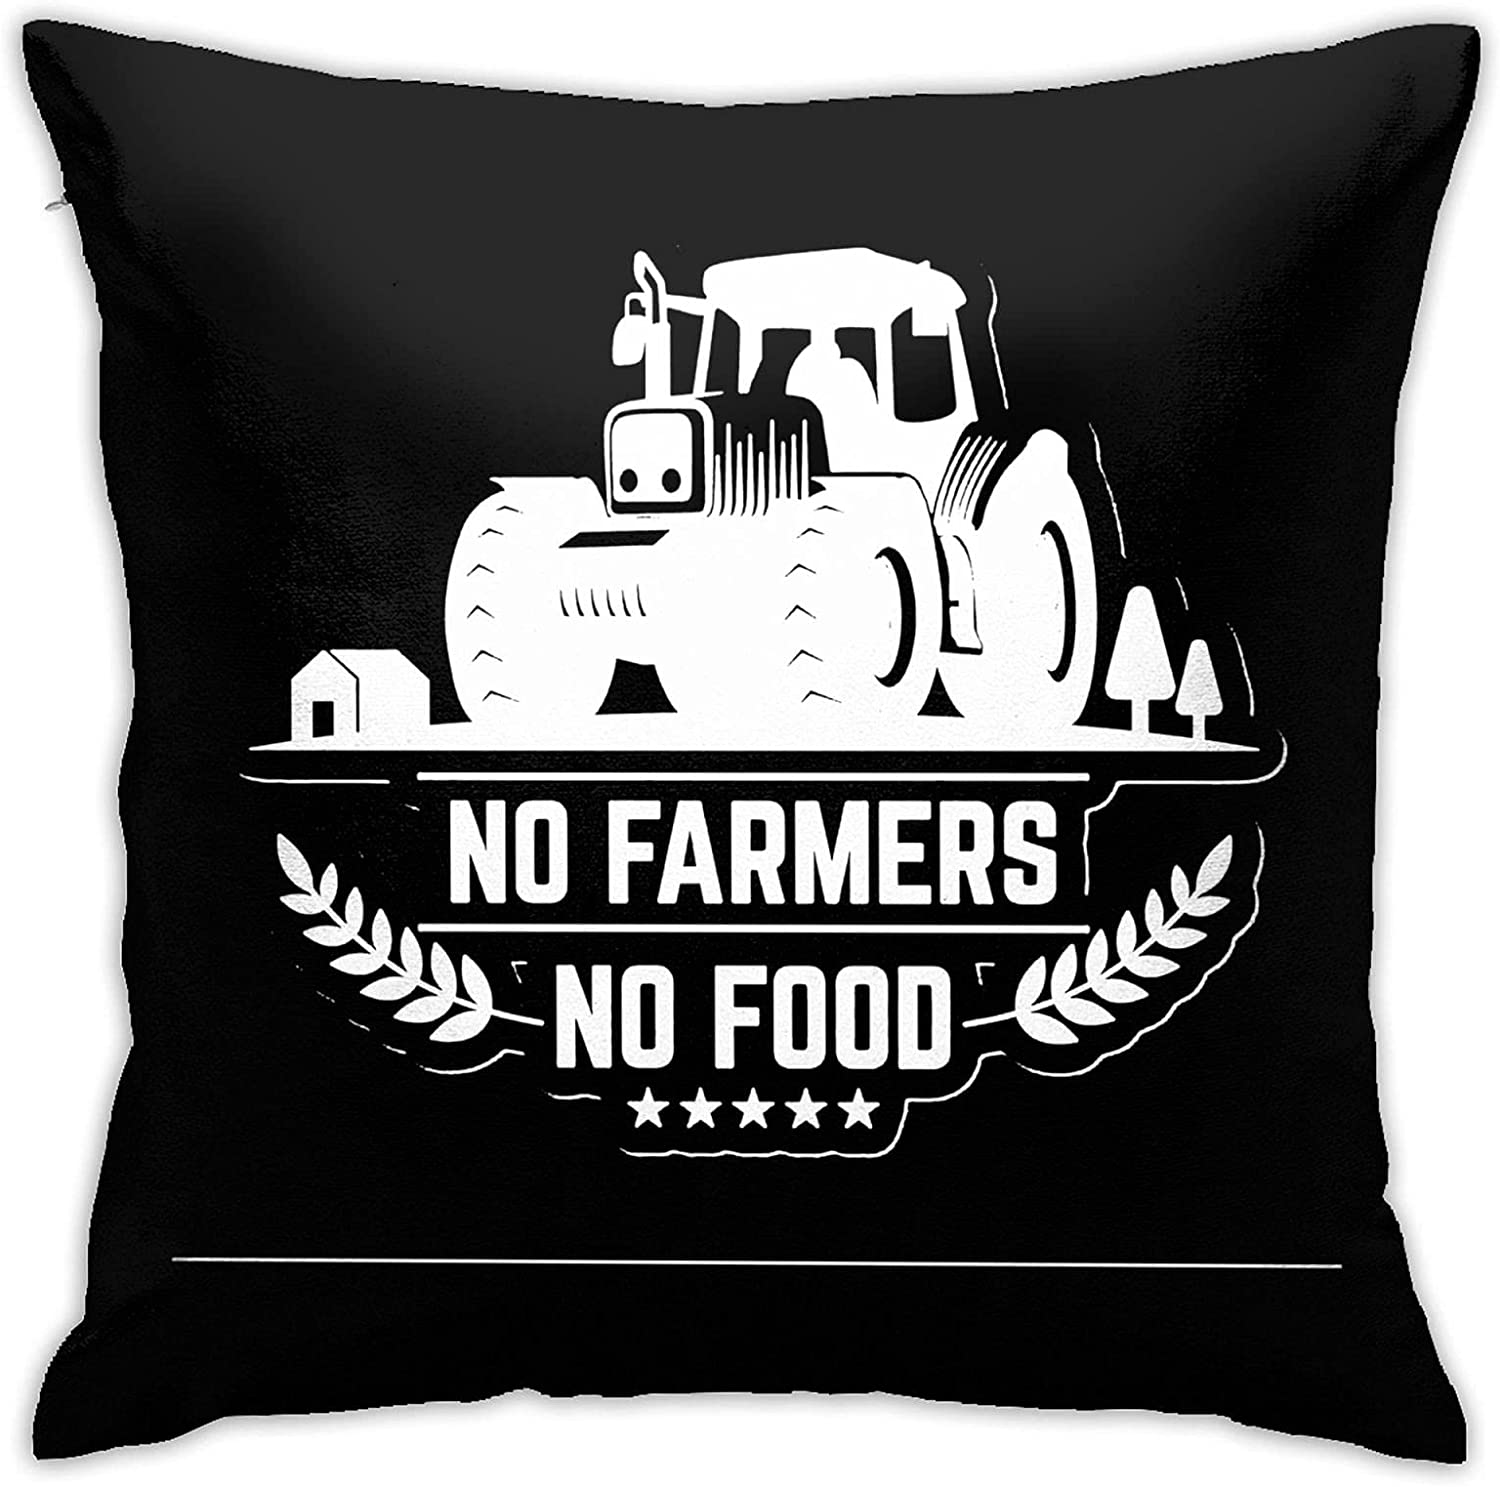 WIMTRO No Farms No Food Farmer Pillow Covers 18x18 inch Pillow Covers